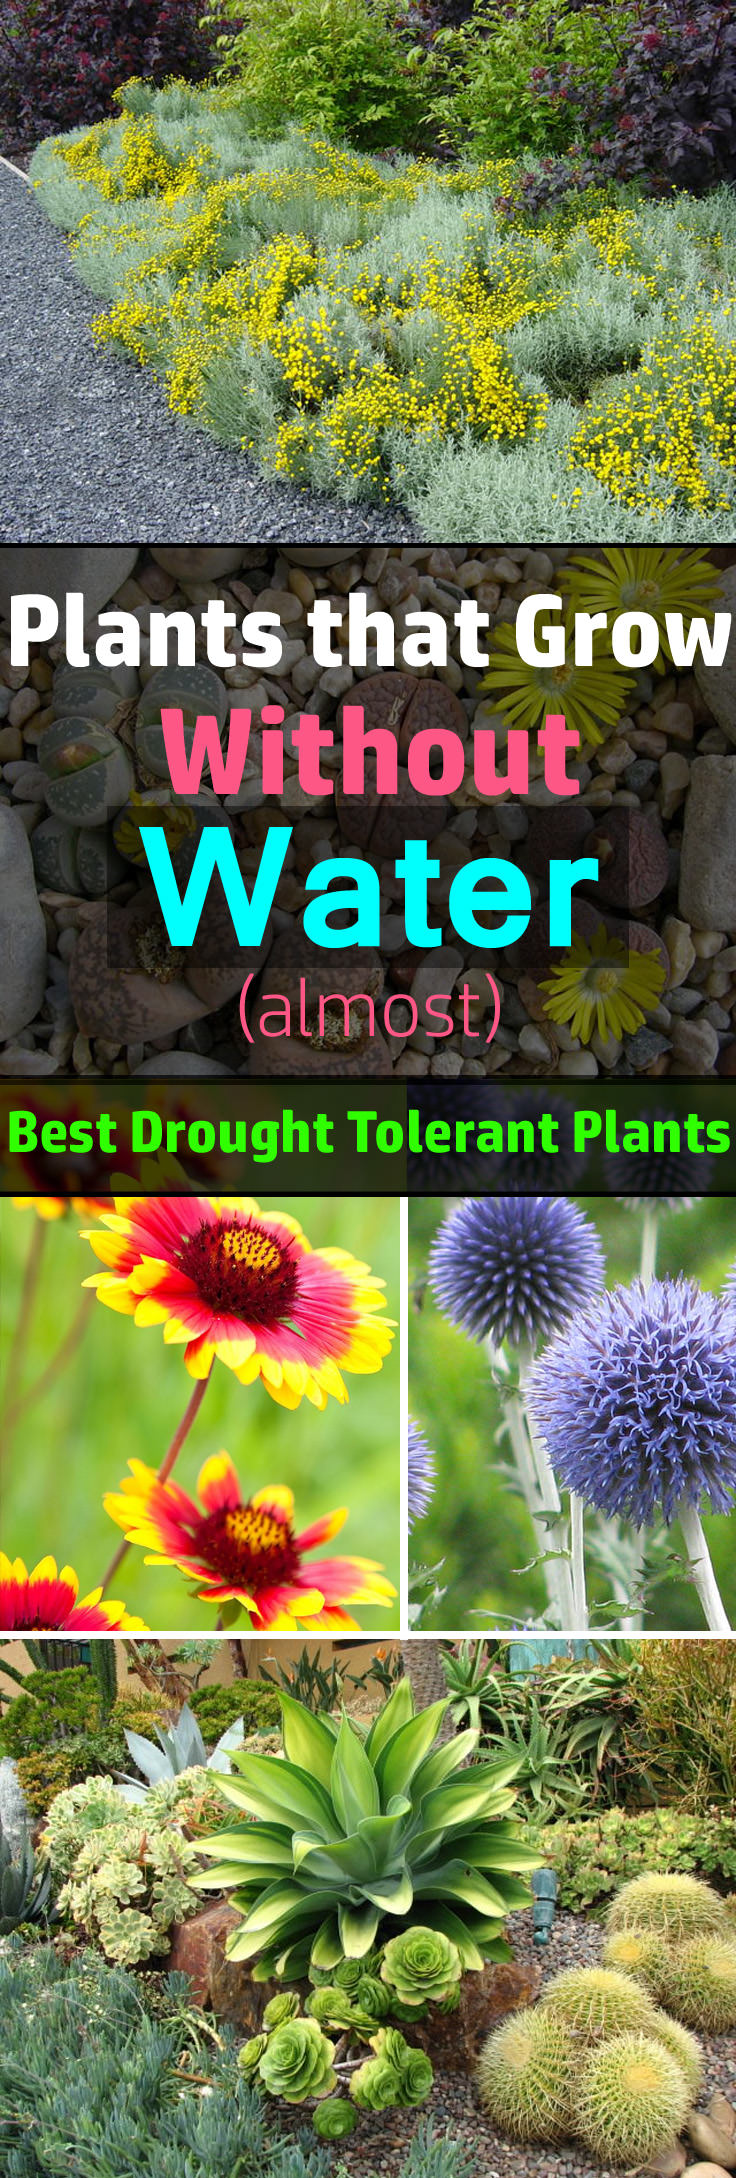 plants that grow without water (almost)